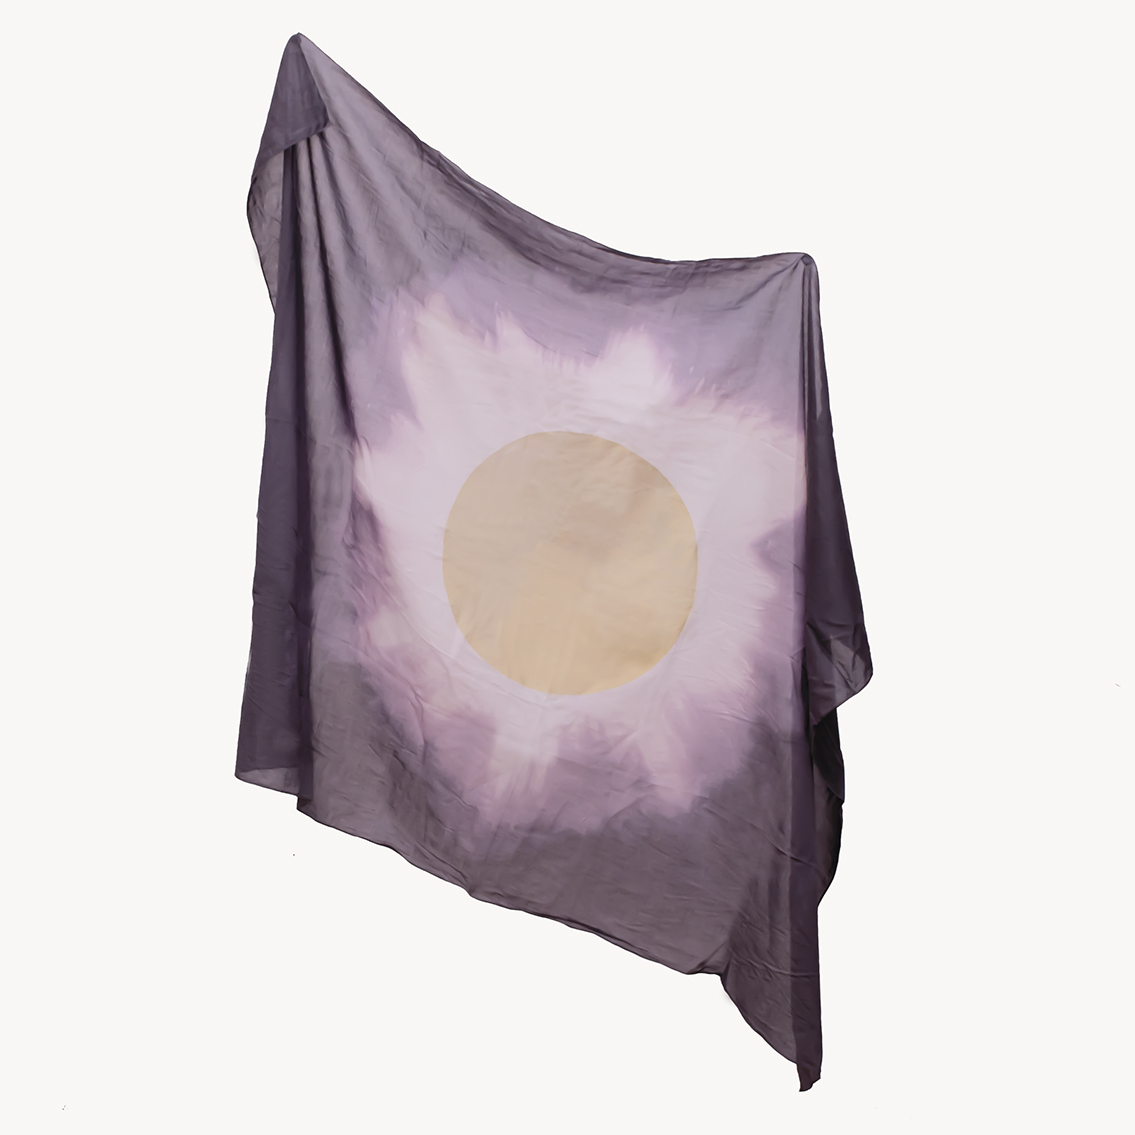 Golden Eclipse on a Grey Scarf